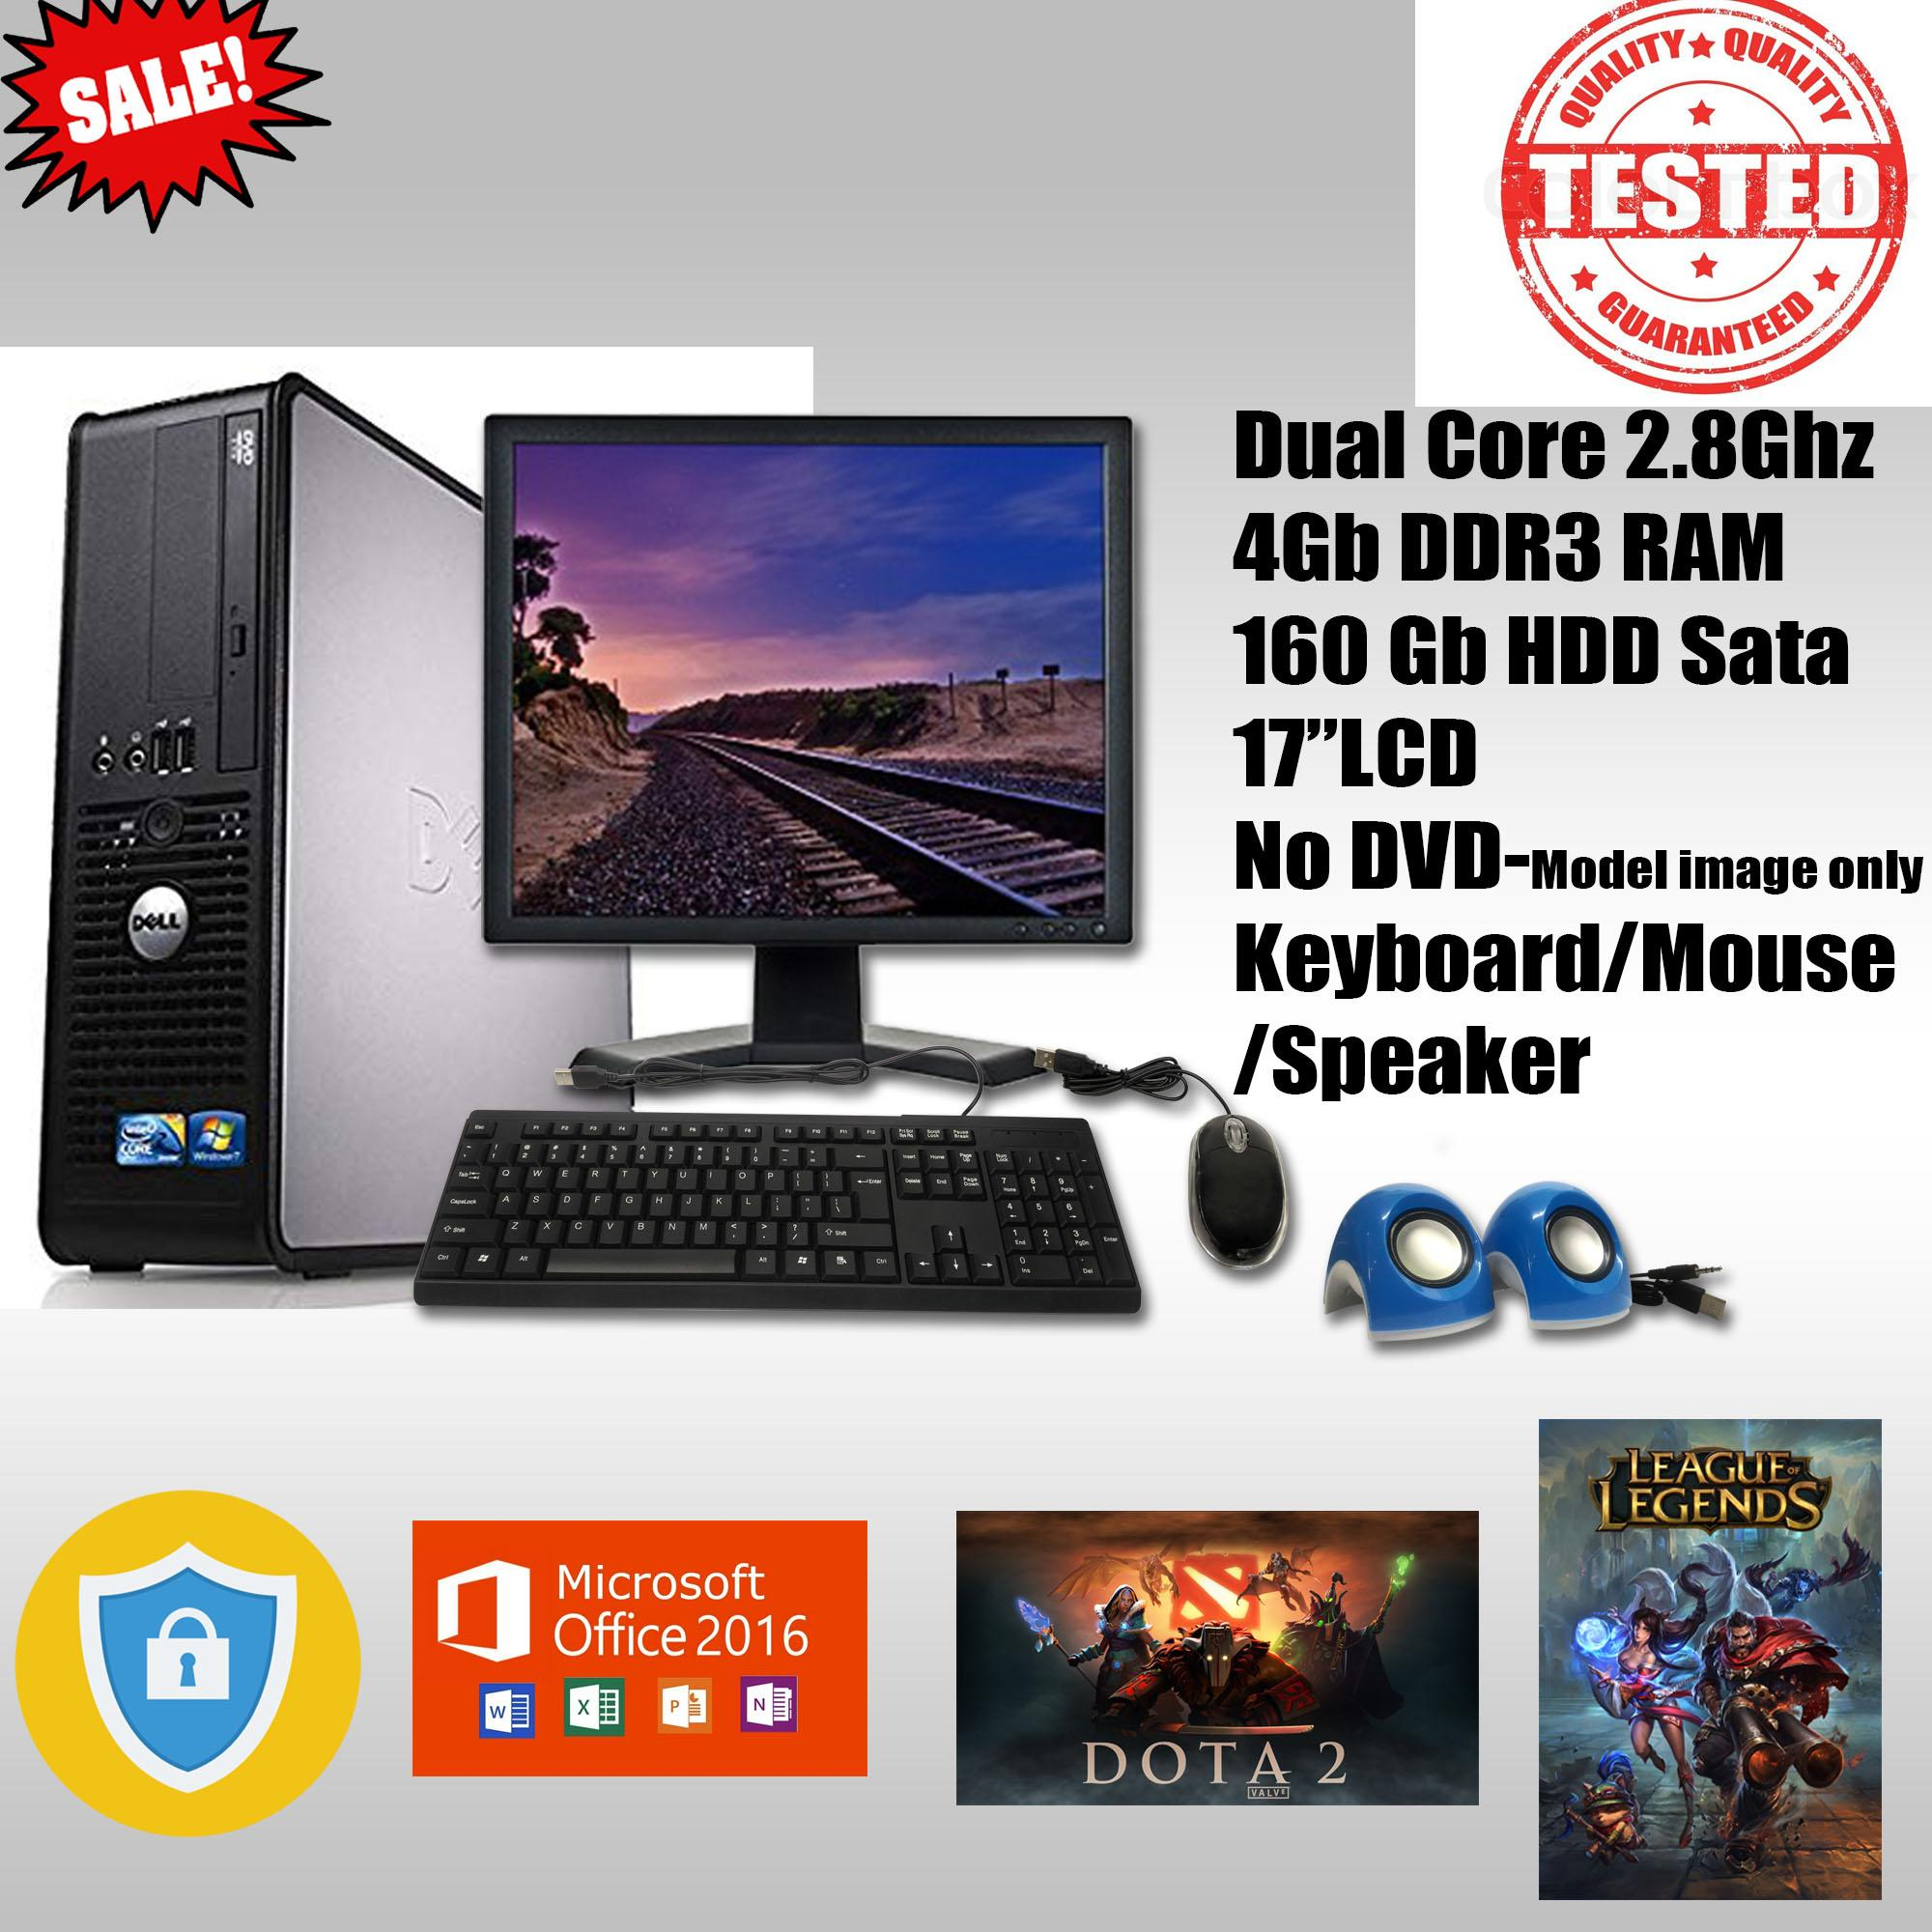 3307 Computers & Laptops items priced lower @ Lazada